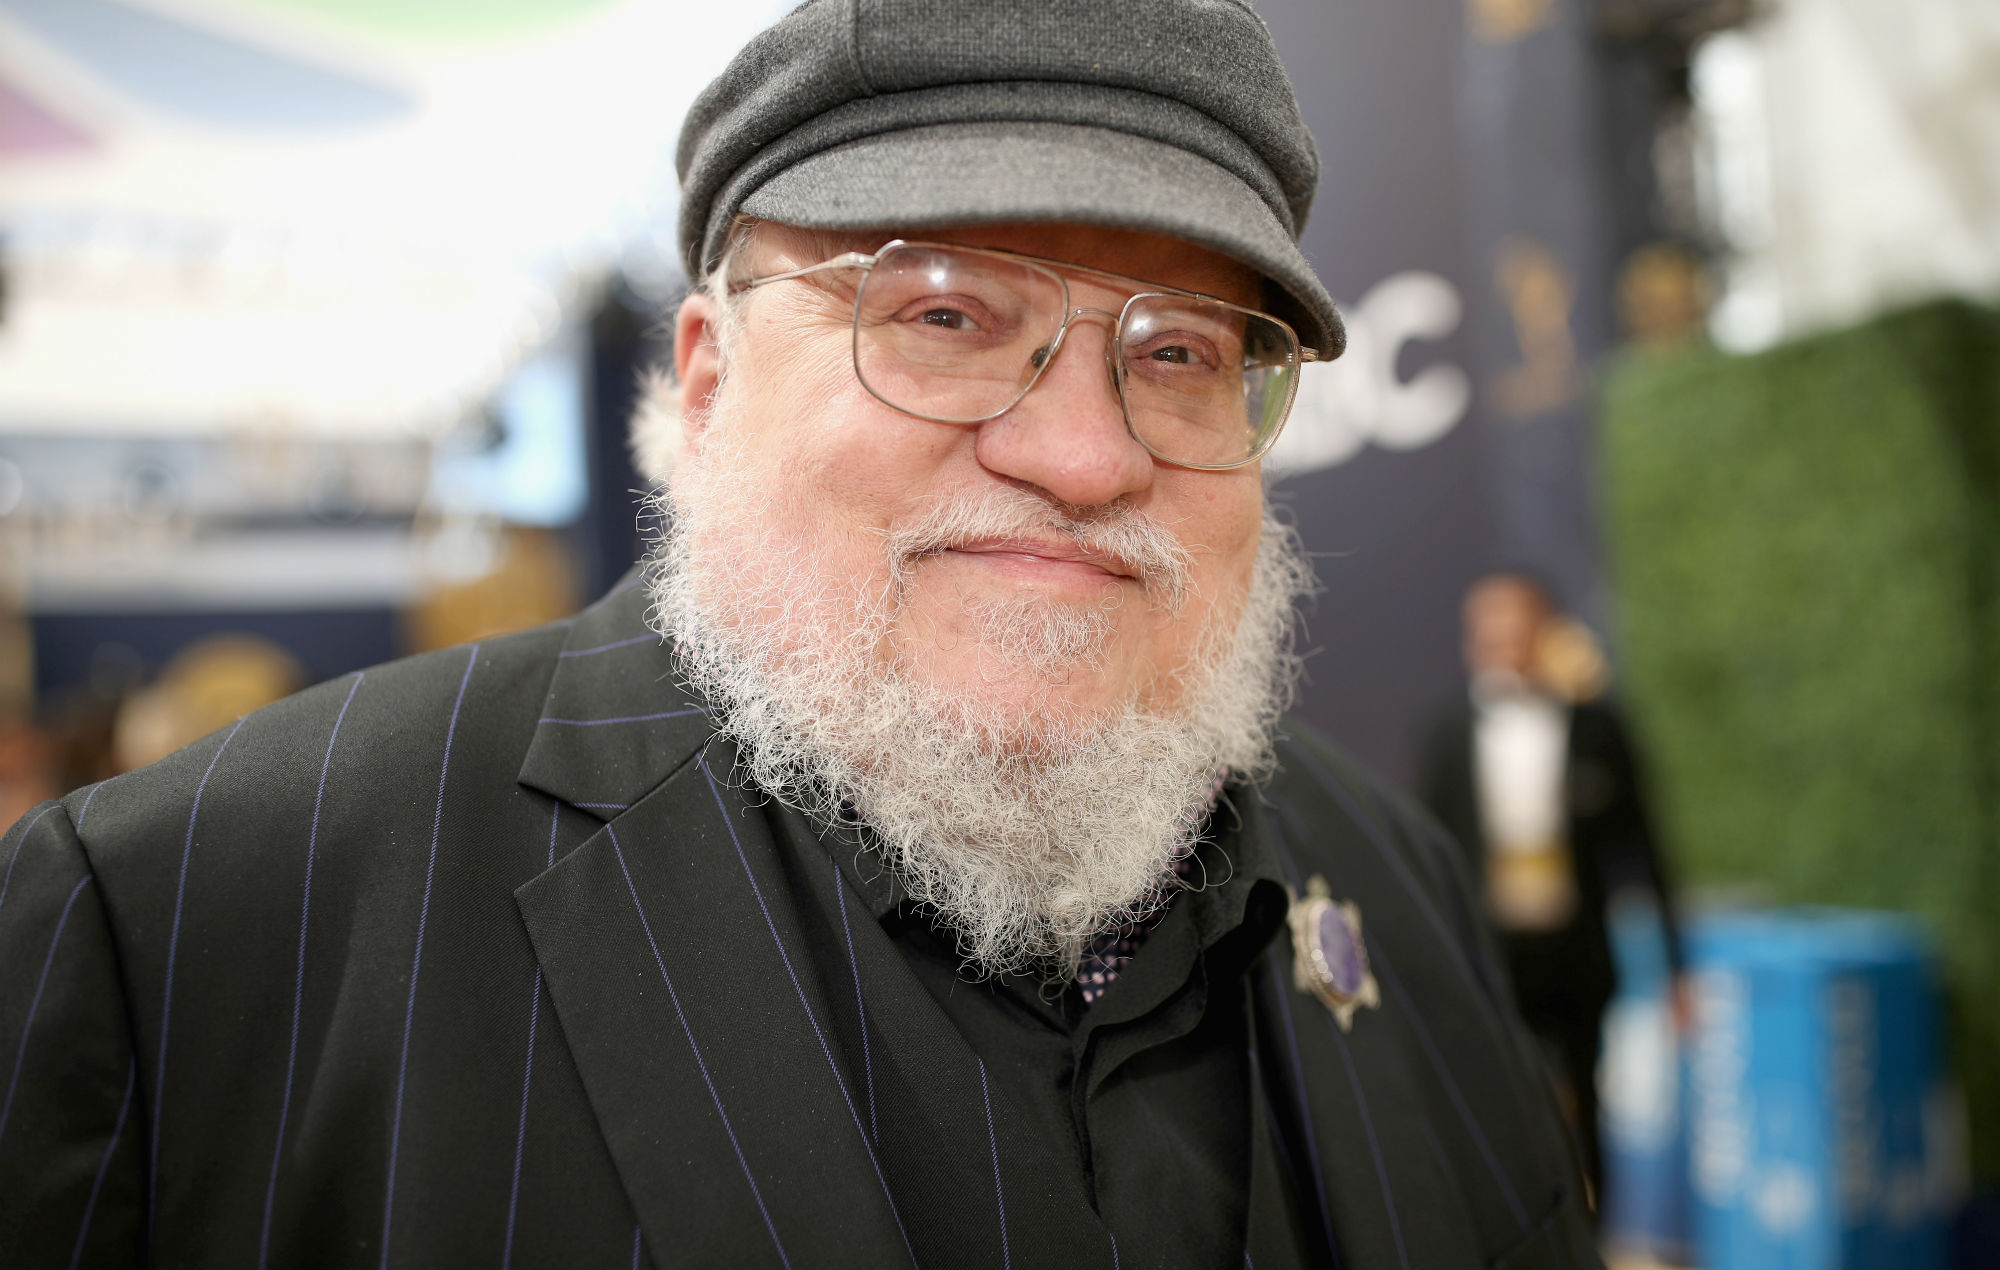 Martin hints 'Game Of Thrones' books will end differently to show